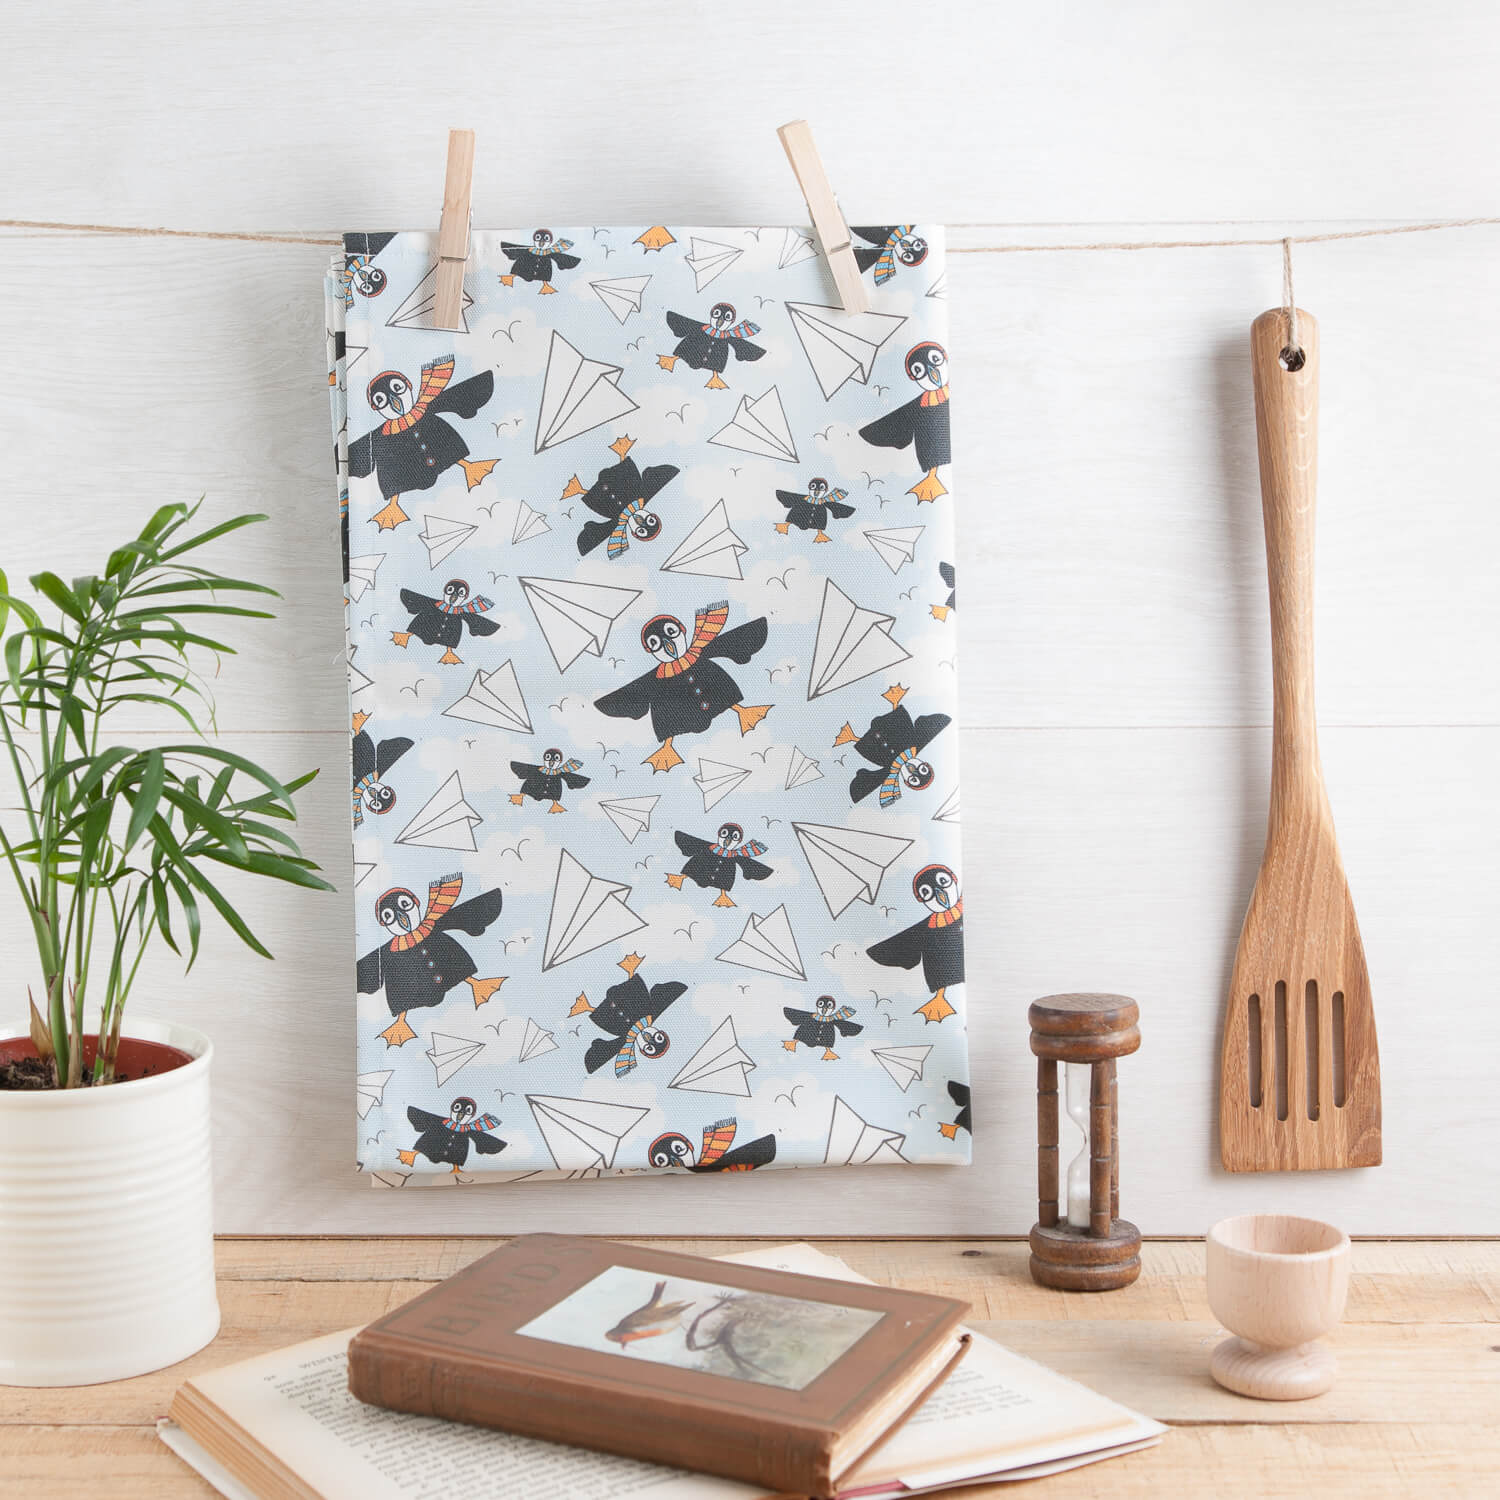 Kitchenware photography products designed by Helen Russell Creations